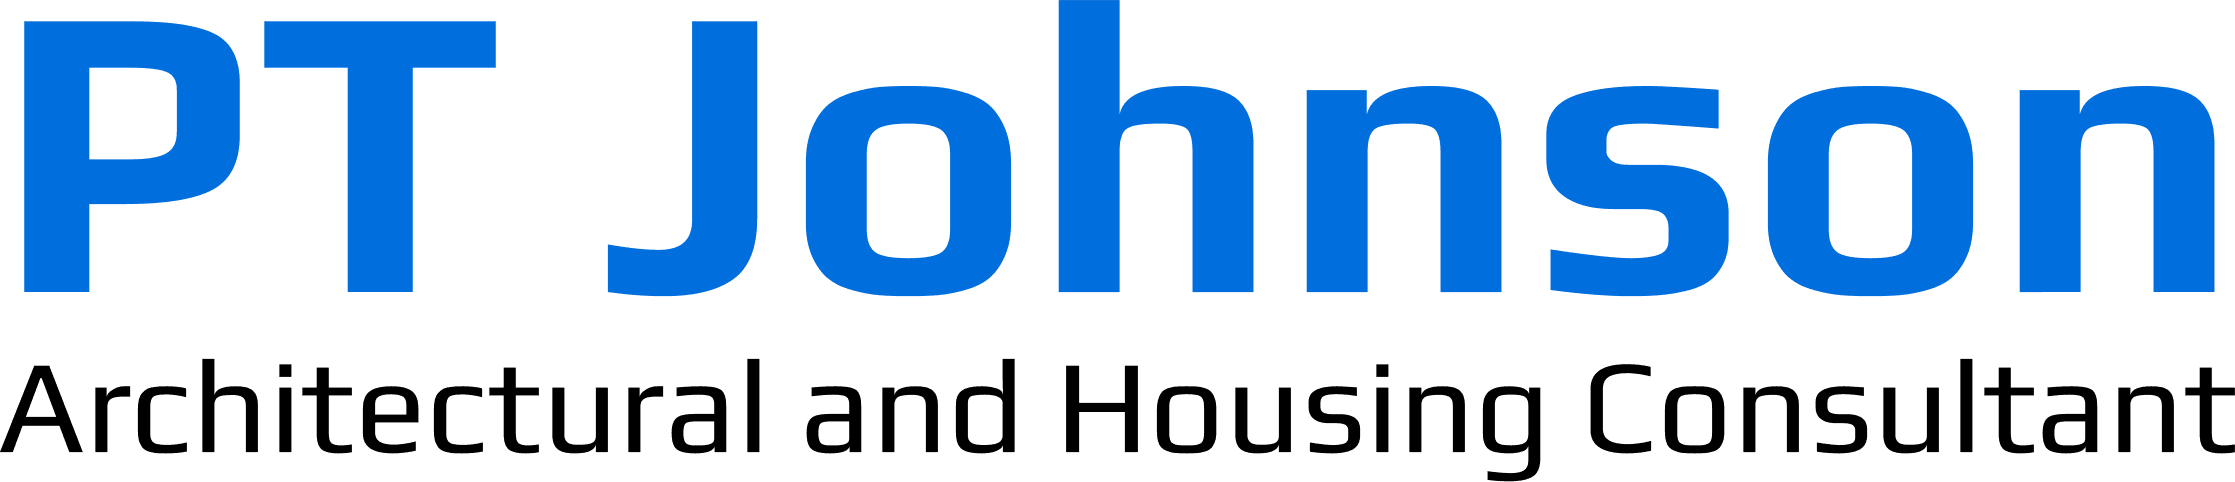 PT Johnson Architectural and Housing Consultant logo